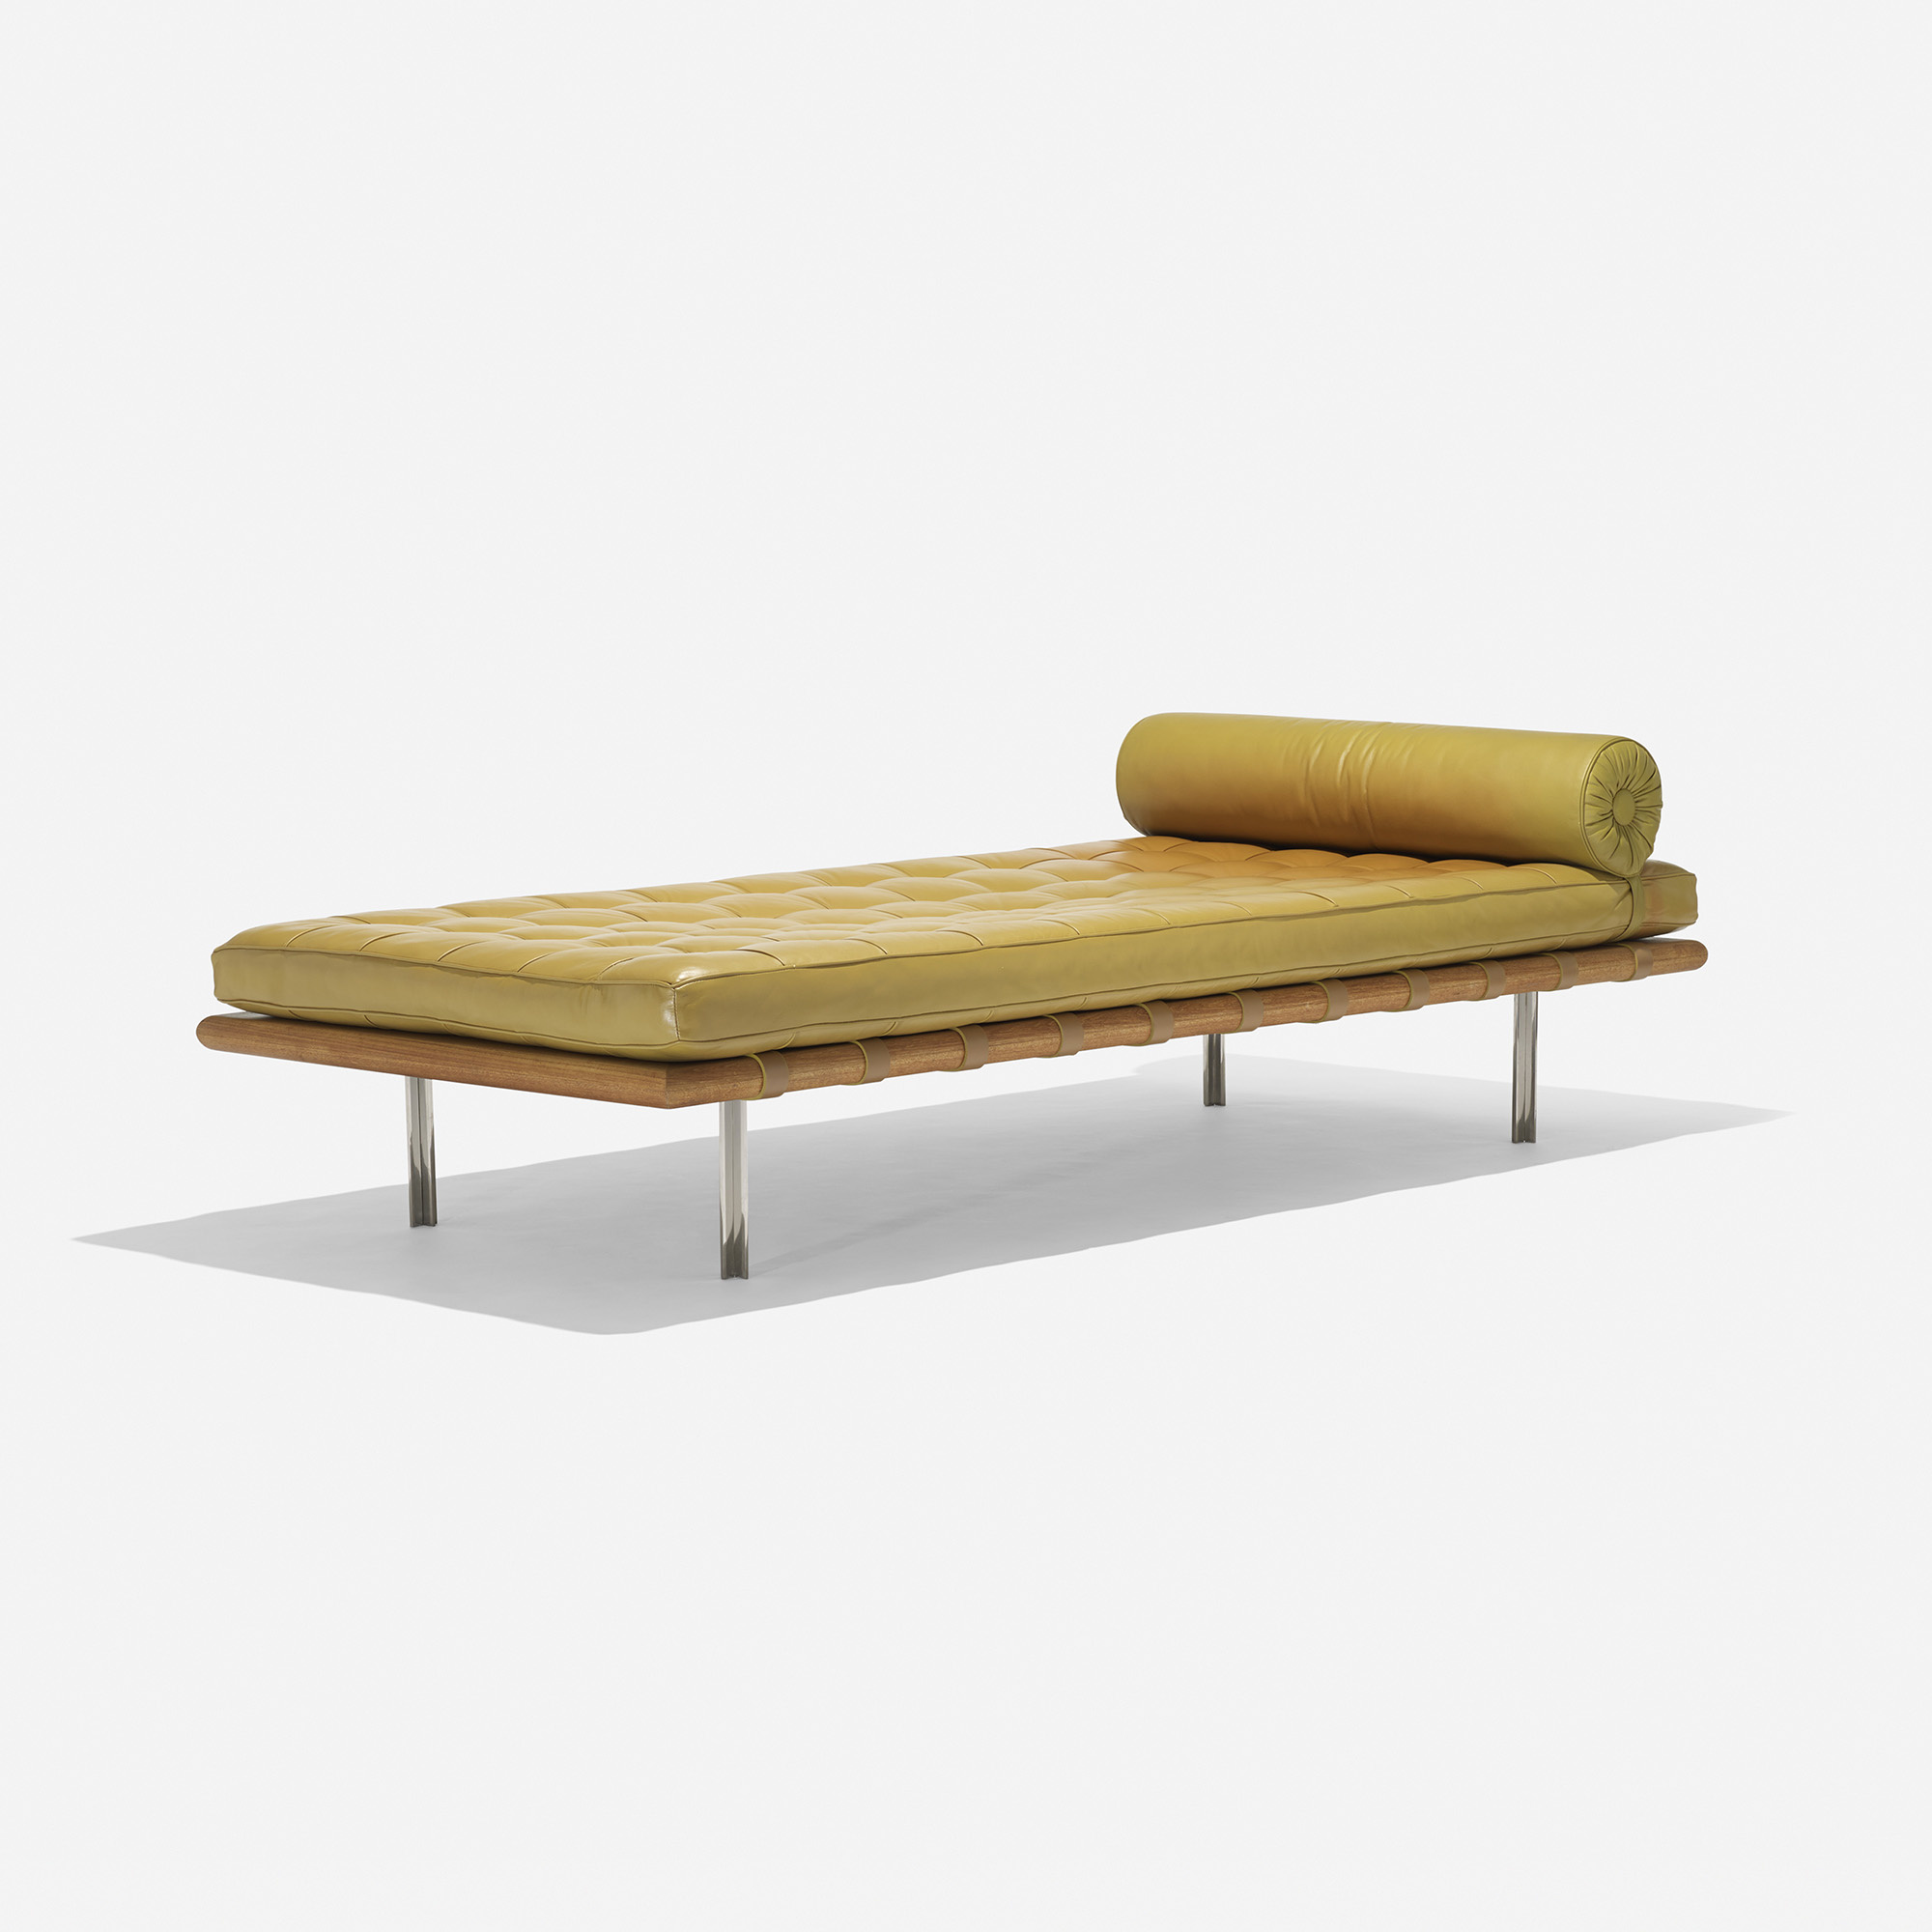 Barcelona Daybed 517 Ludwig Mies Van Der Rohe Barcelona Daybed From 860 Lake